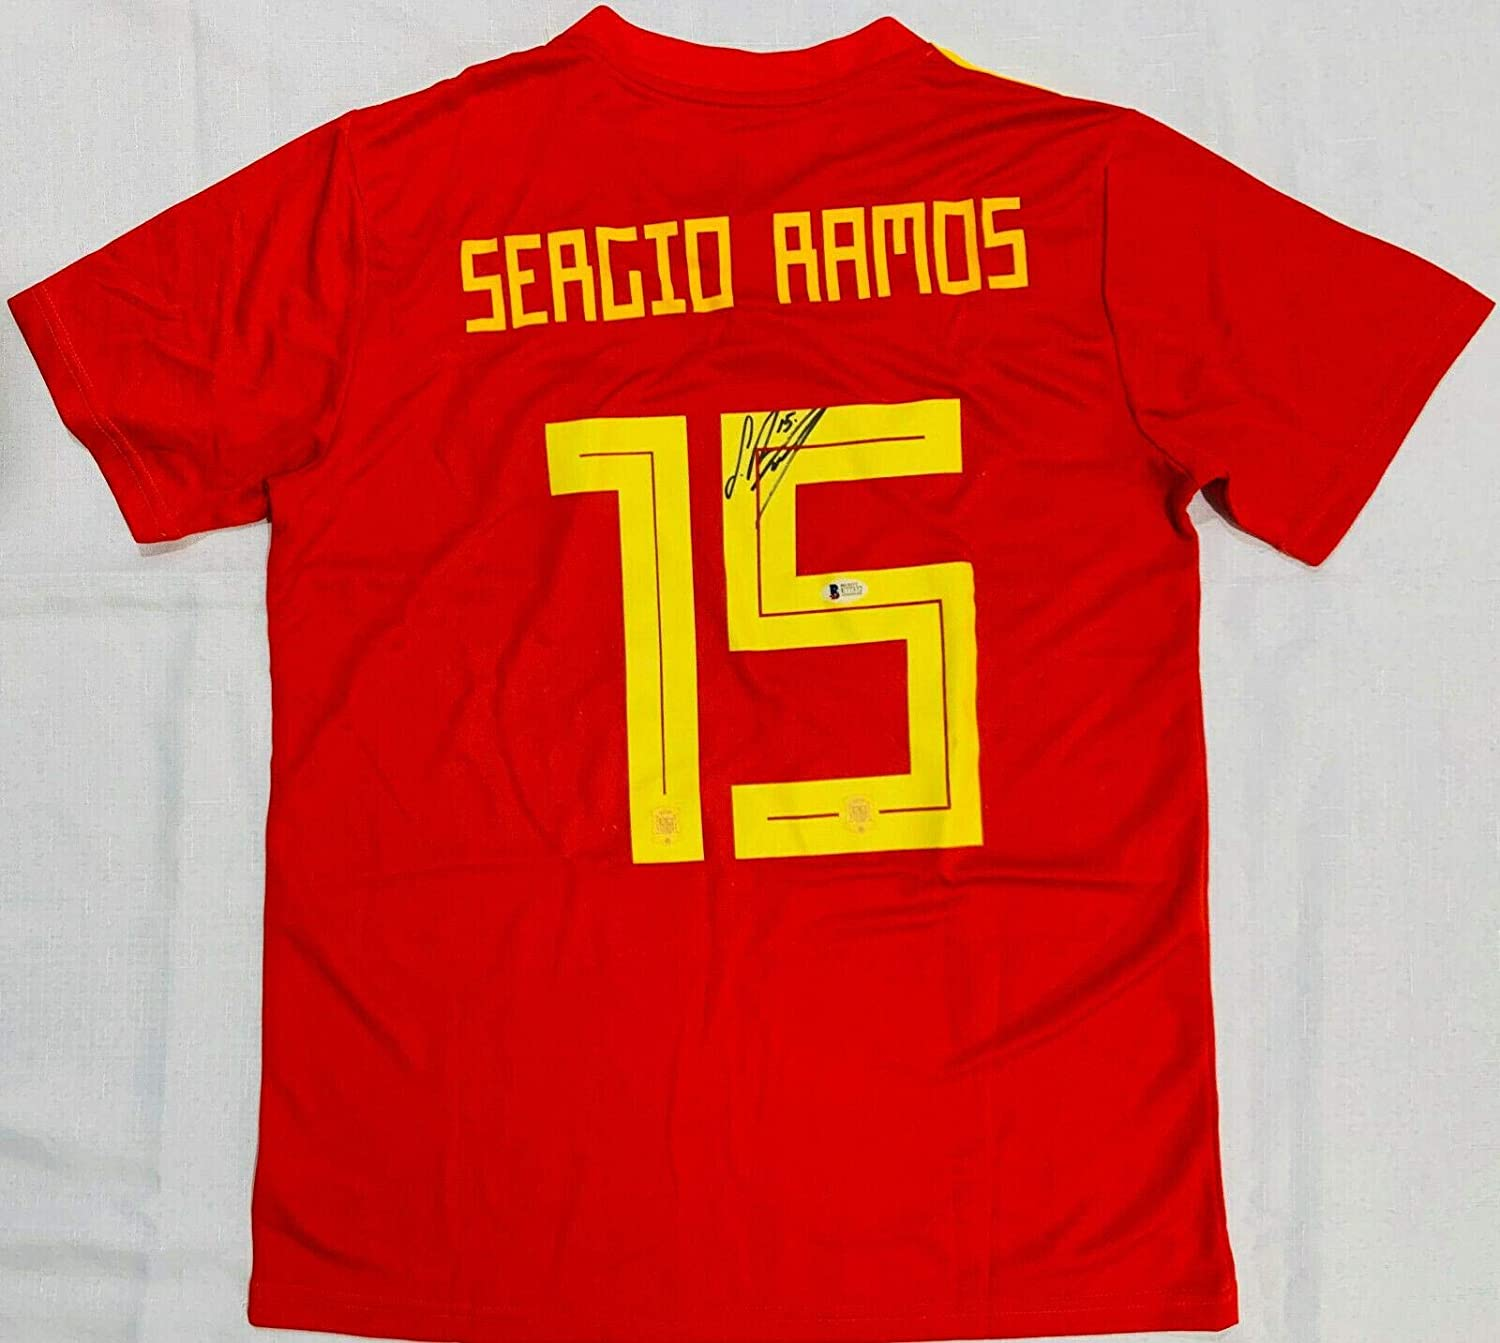 d35f581defb Autographed Sergio Ramos Jersey - Spain World Cup Beckett BAS - Beckett  Authentication - Autographed Soccer Jerseys at Amazon's Sports Collectibles  Store